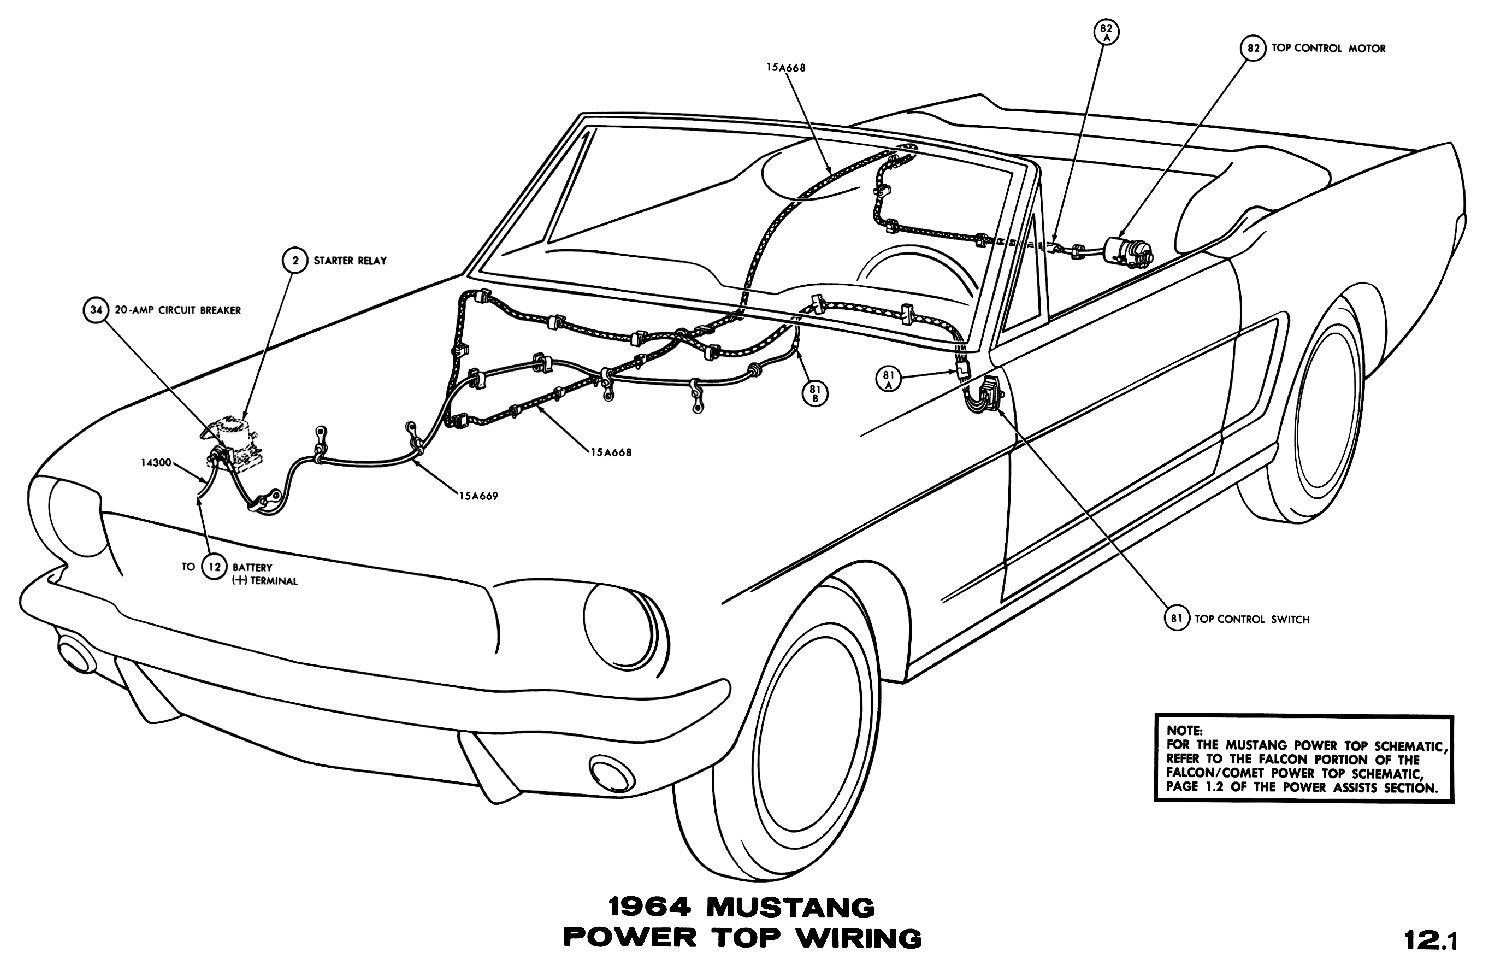 hight resolution of 1964 mustang power top wiring